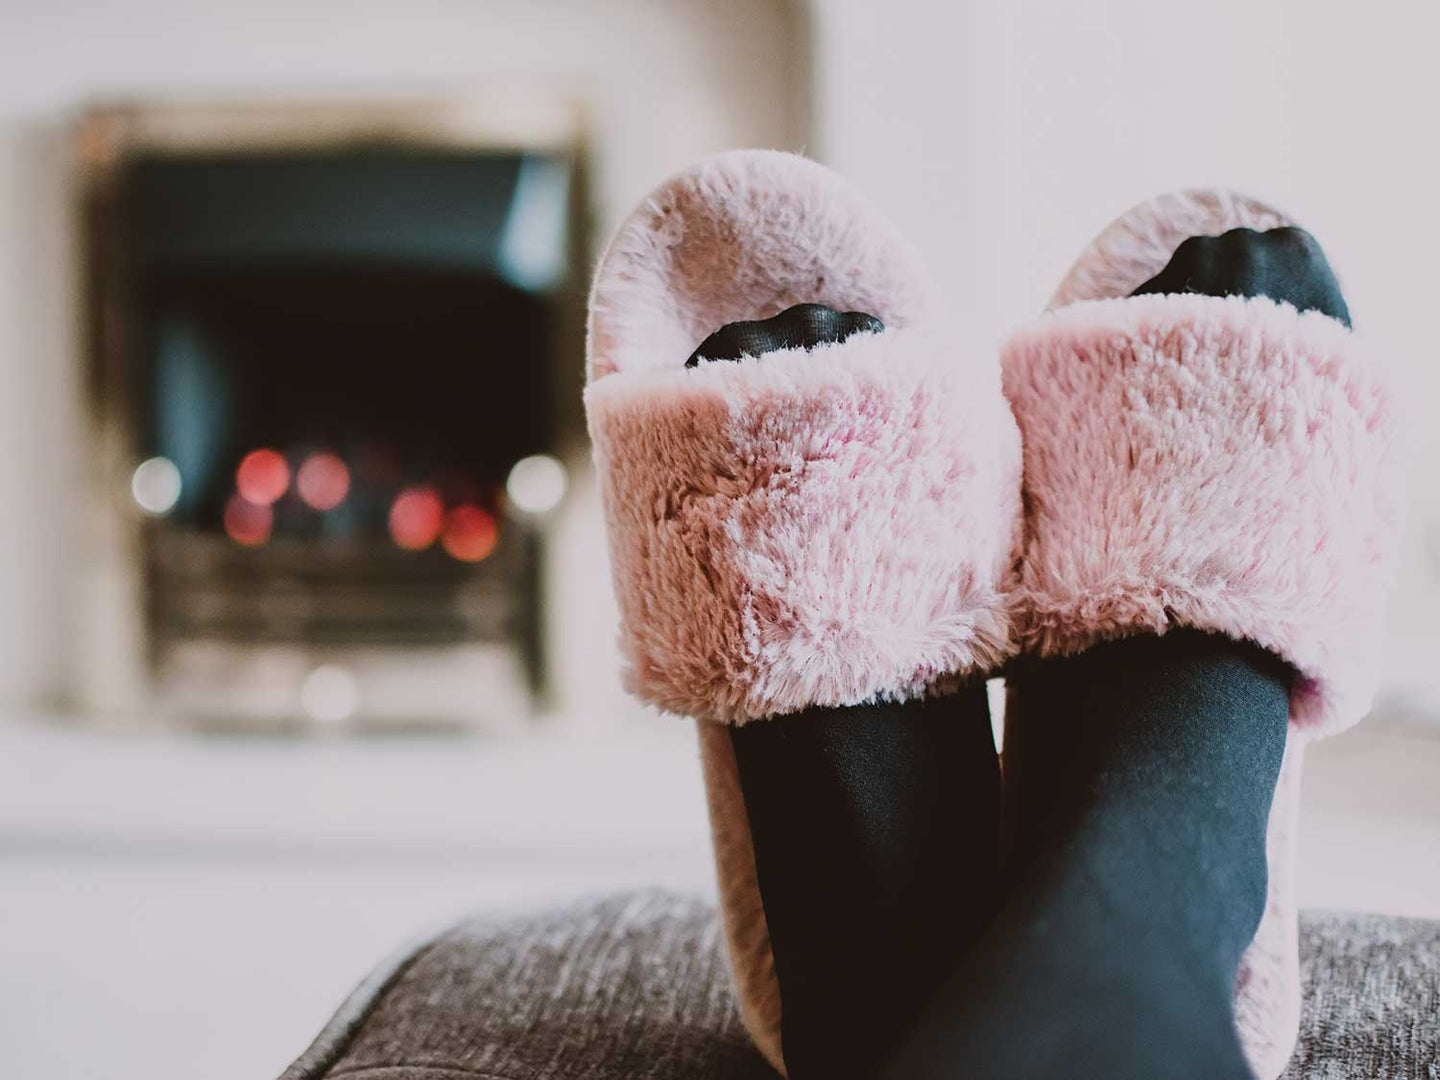 Woman wearing tights and slips while relaxing in front of the fireplace.